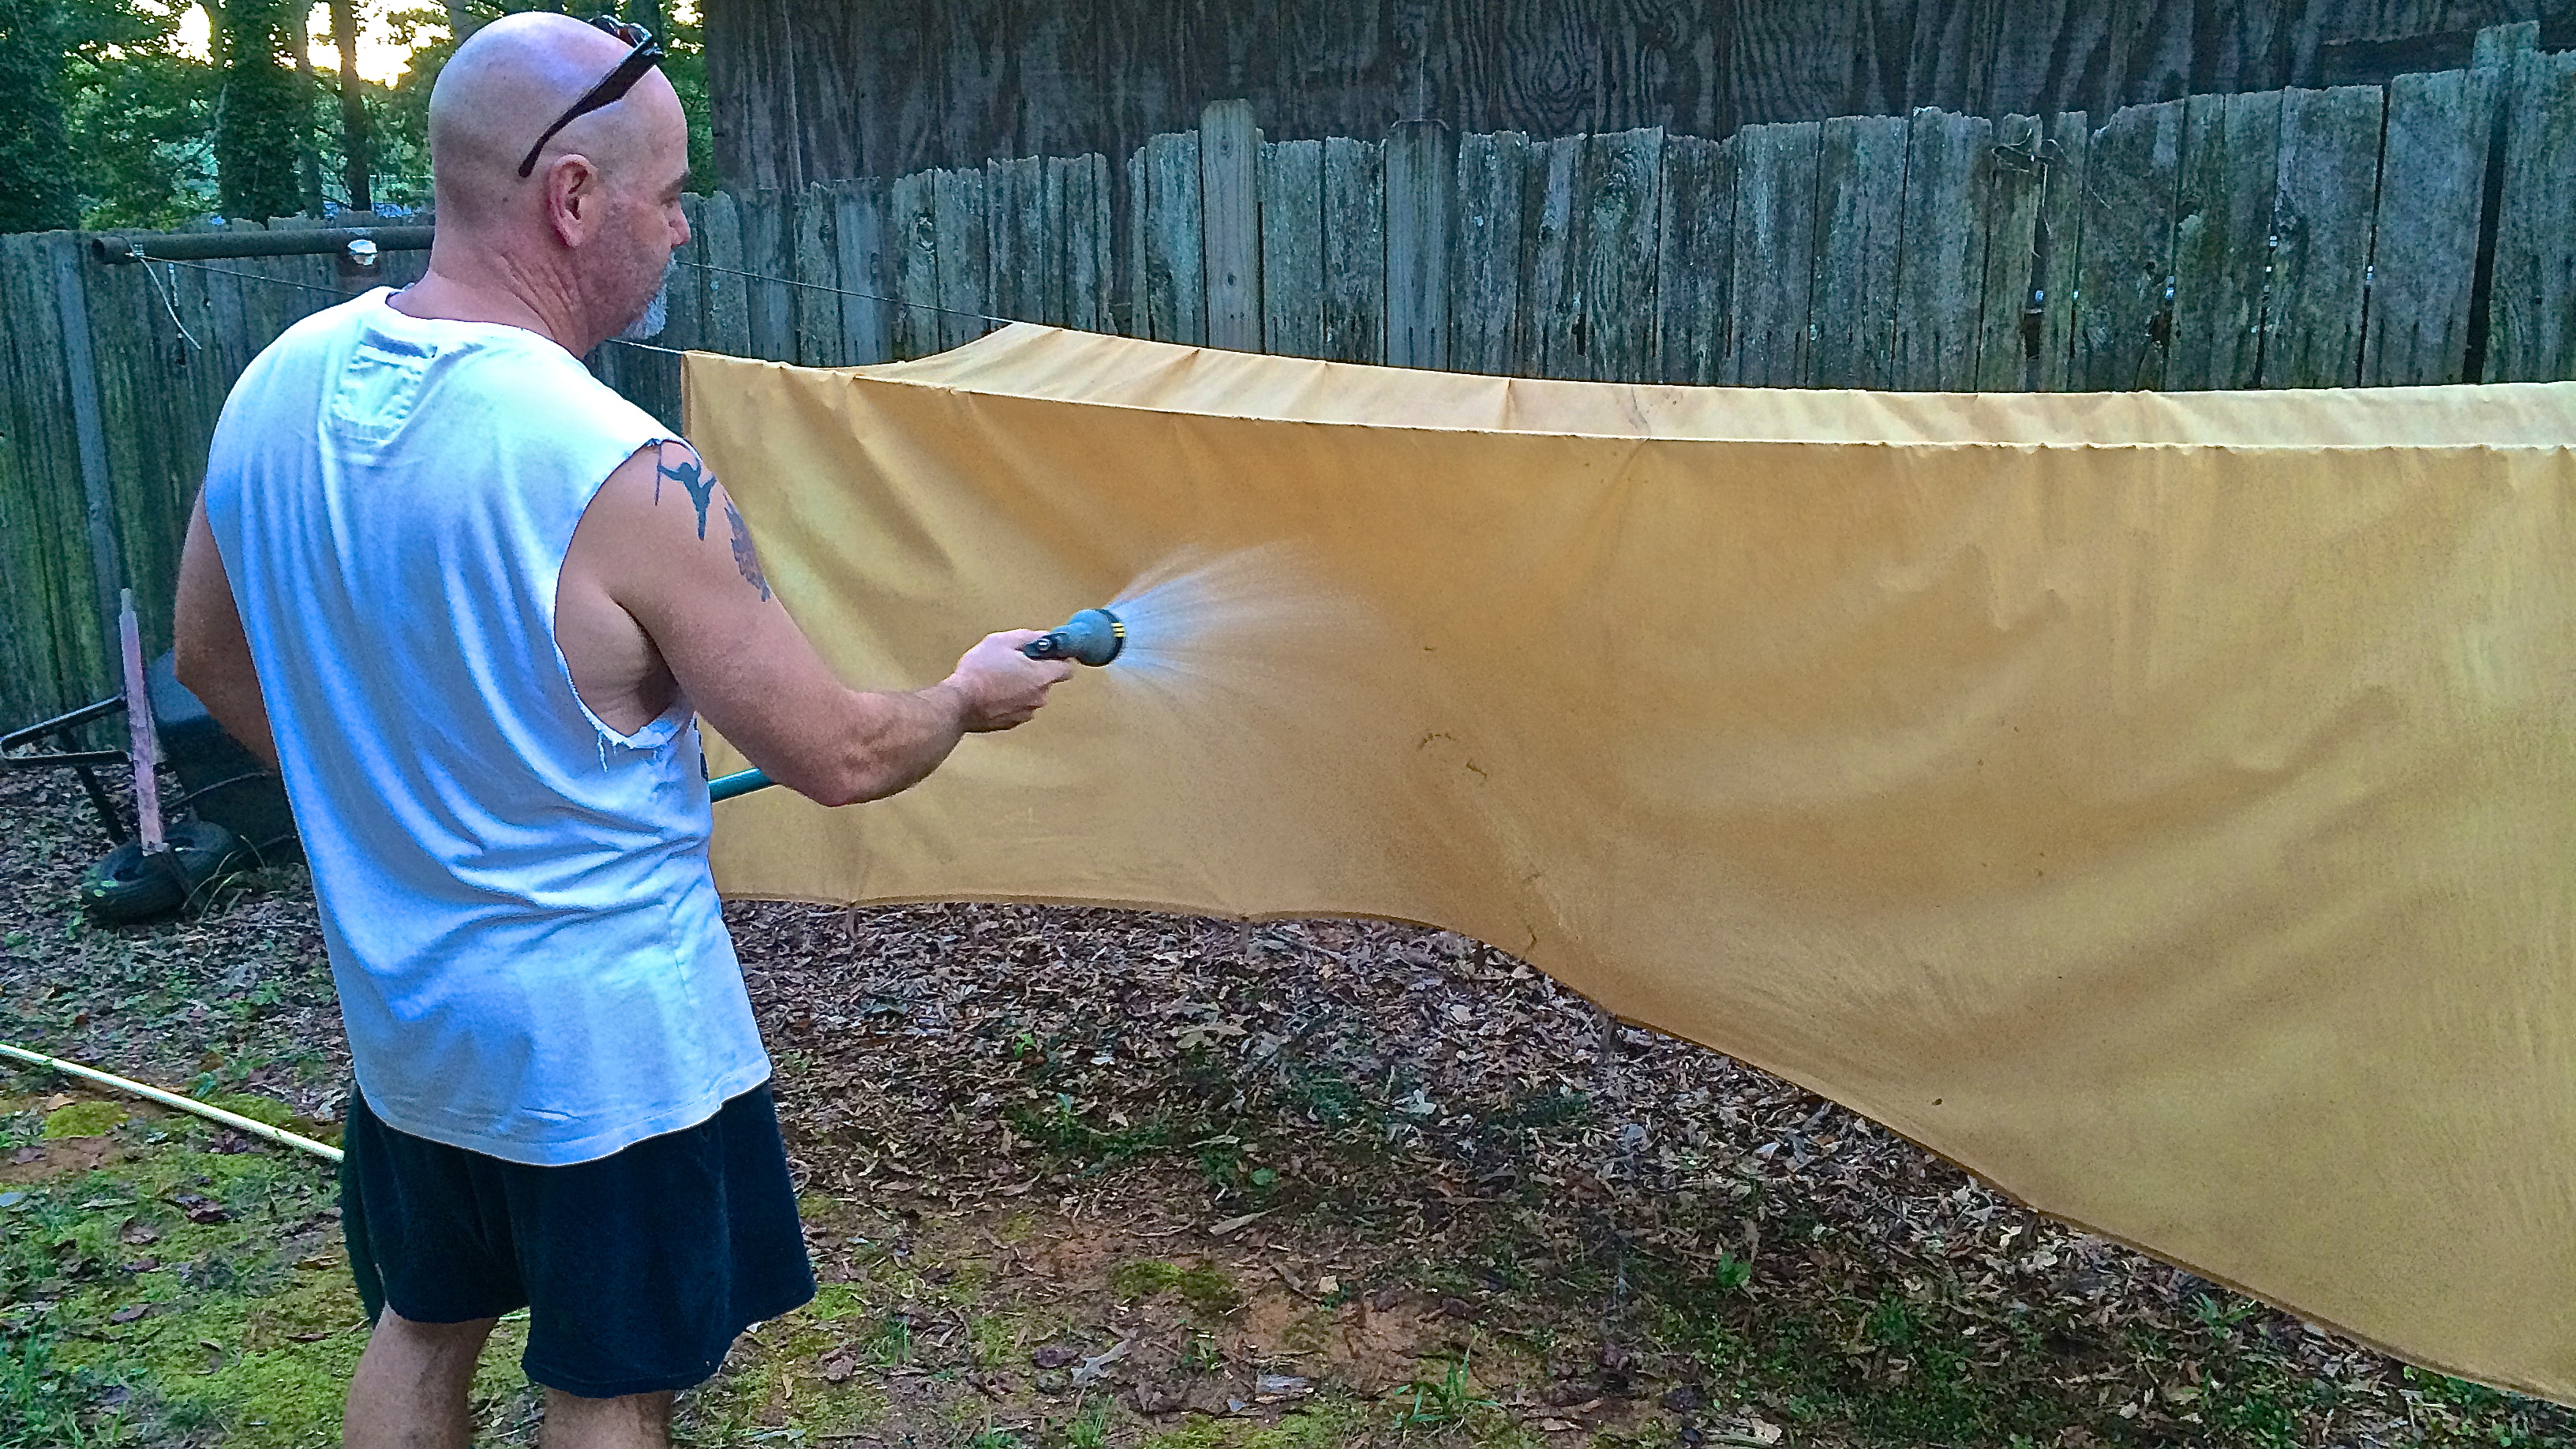 How to Make Lightweight Oilskin Tarps from Bed Sheets & How to Make Lightweight Oilskin Tarps from Bed Sheets | Survival ...